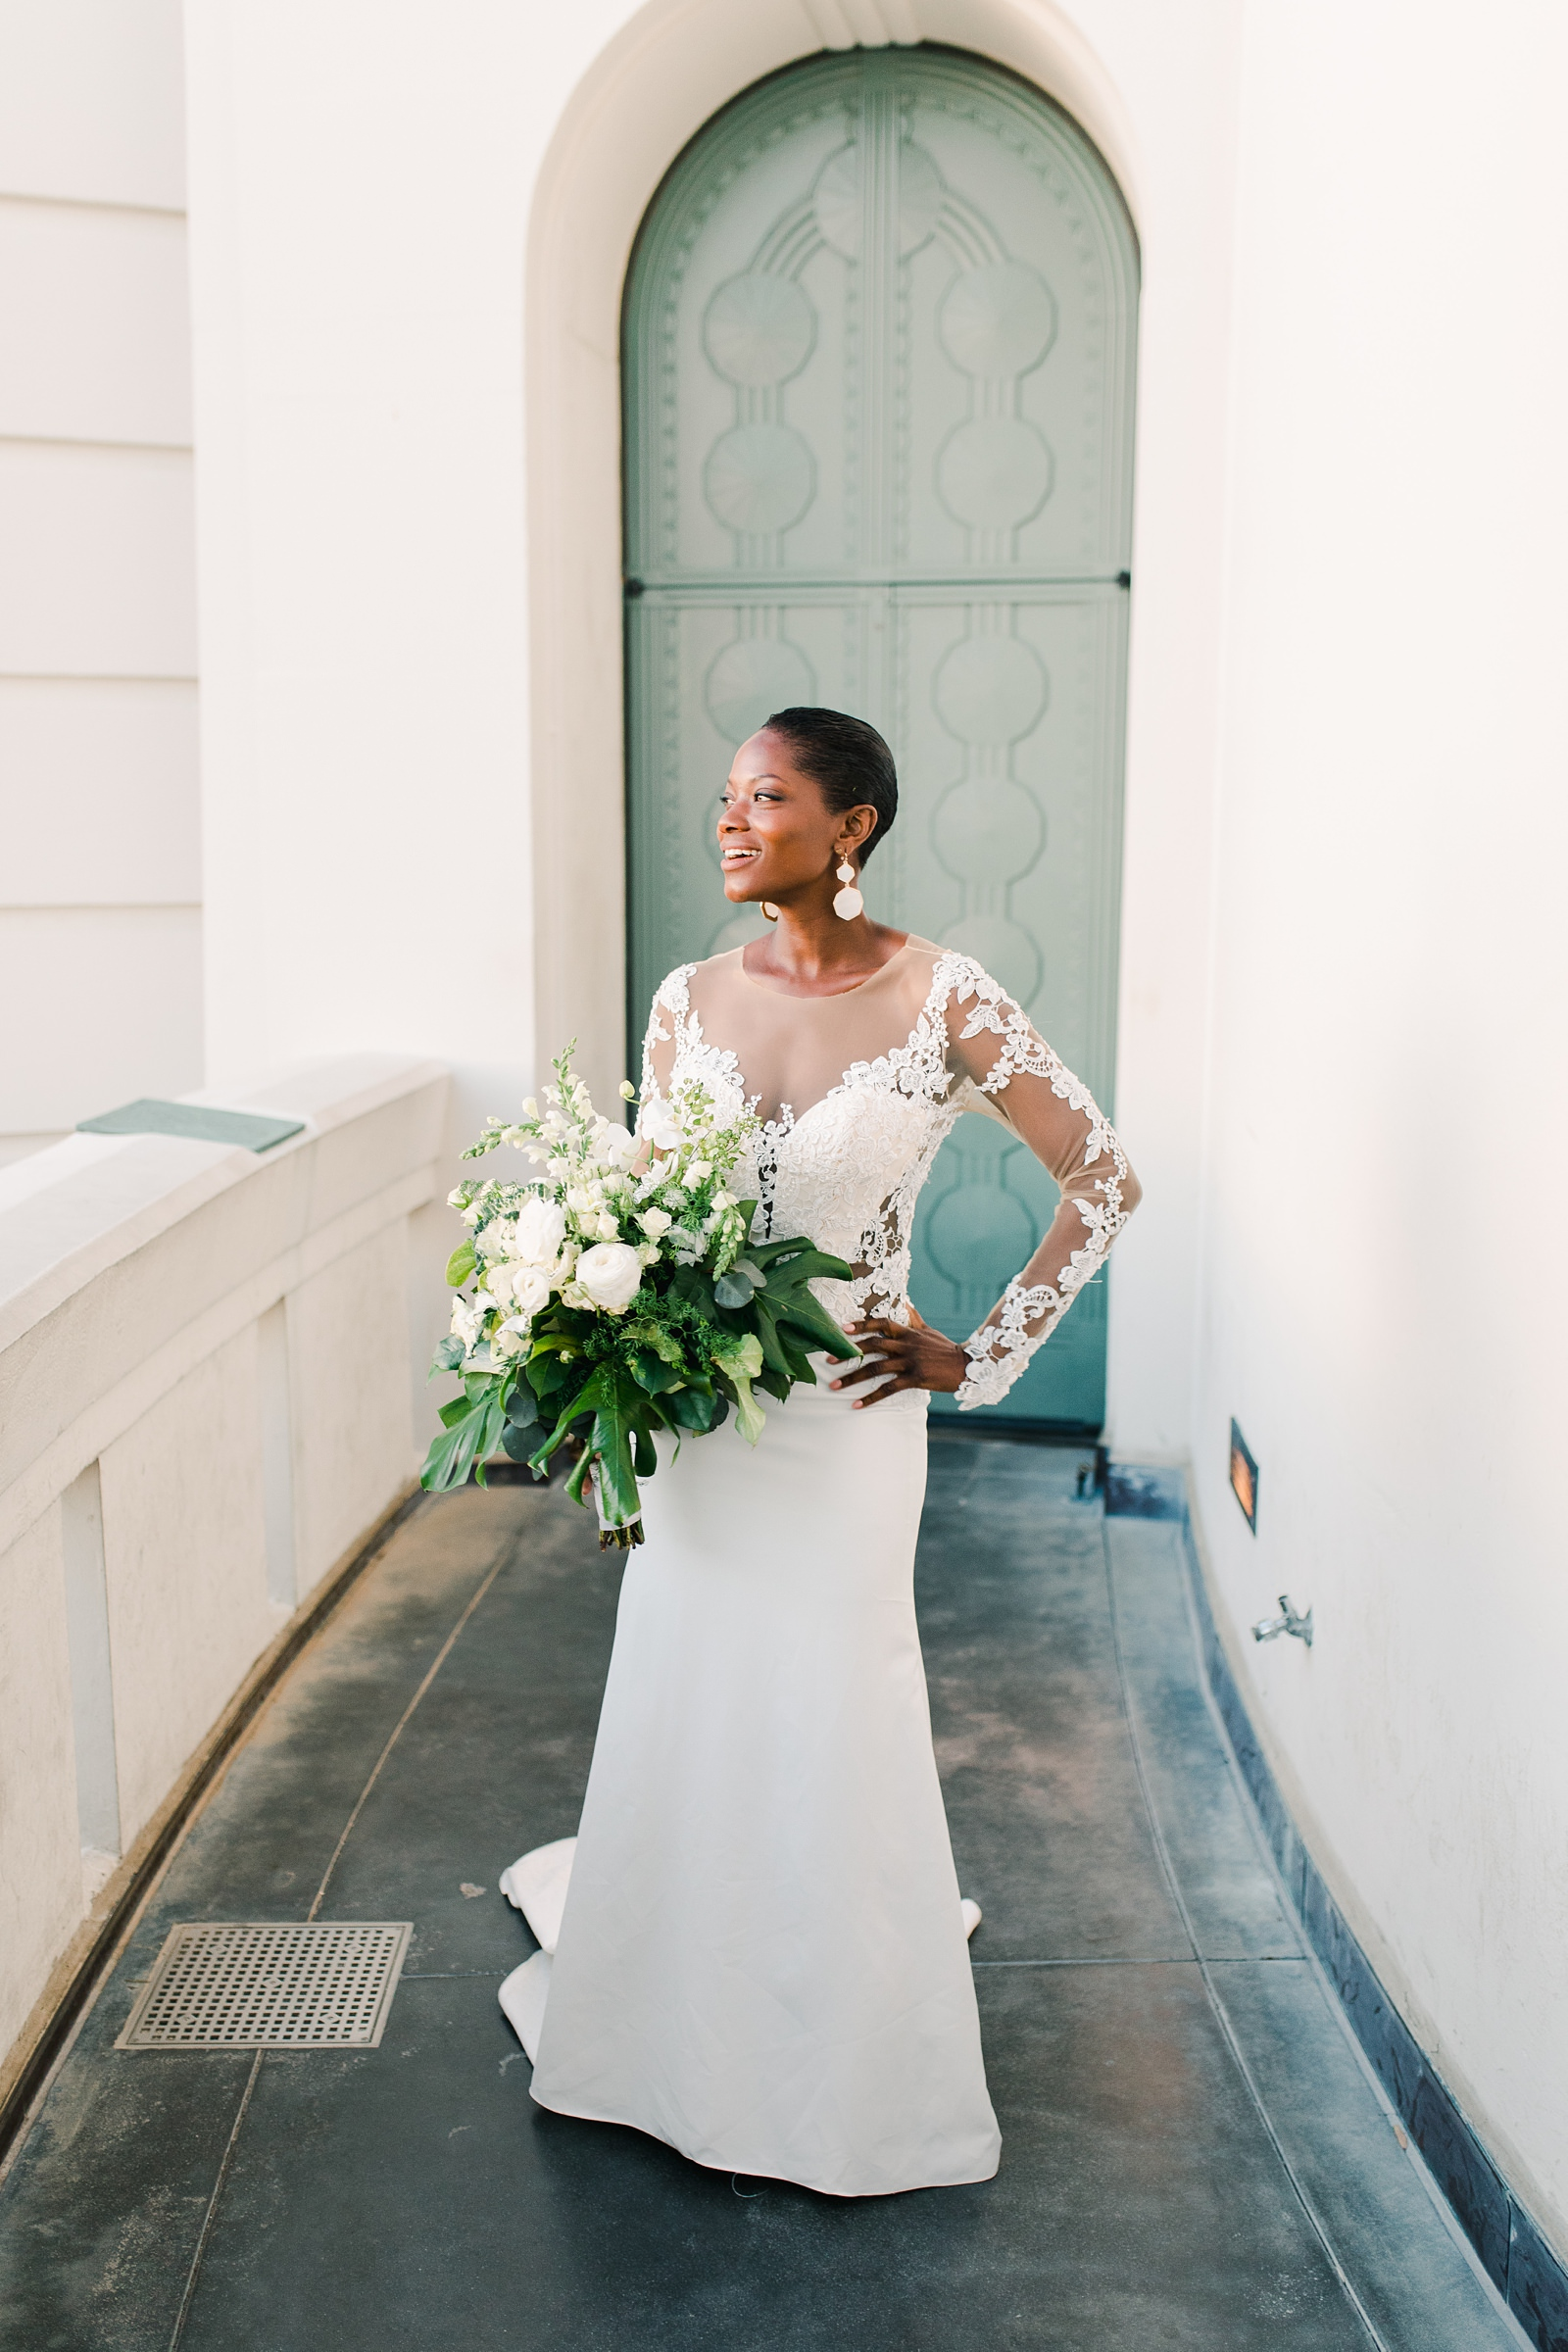 Modern timeless wedding photography at the Griffith Observatory in Los Angeles, California destination wedding photographer, modern bride with long sleeve lace dress, short hair and white flowers with tropical greenery